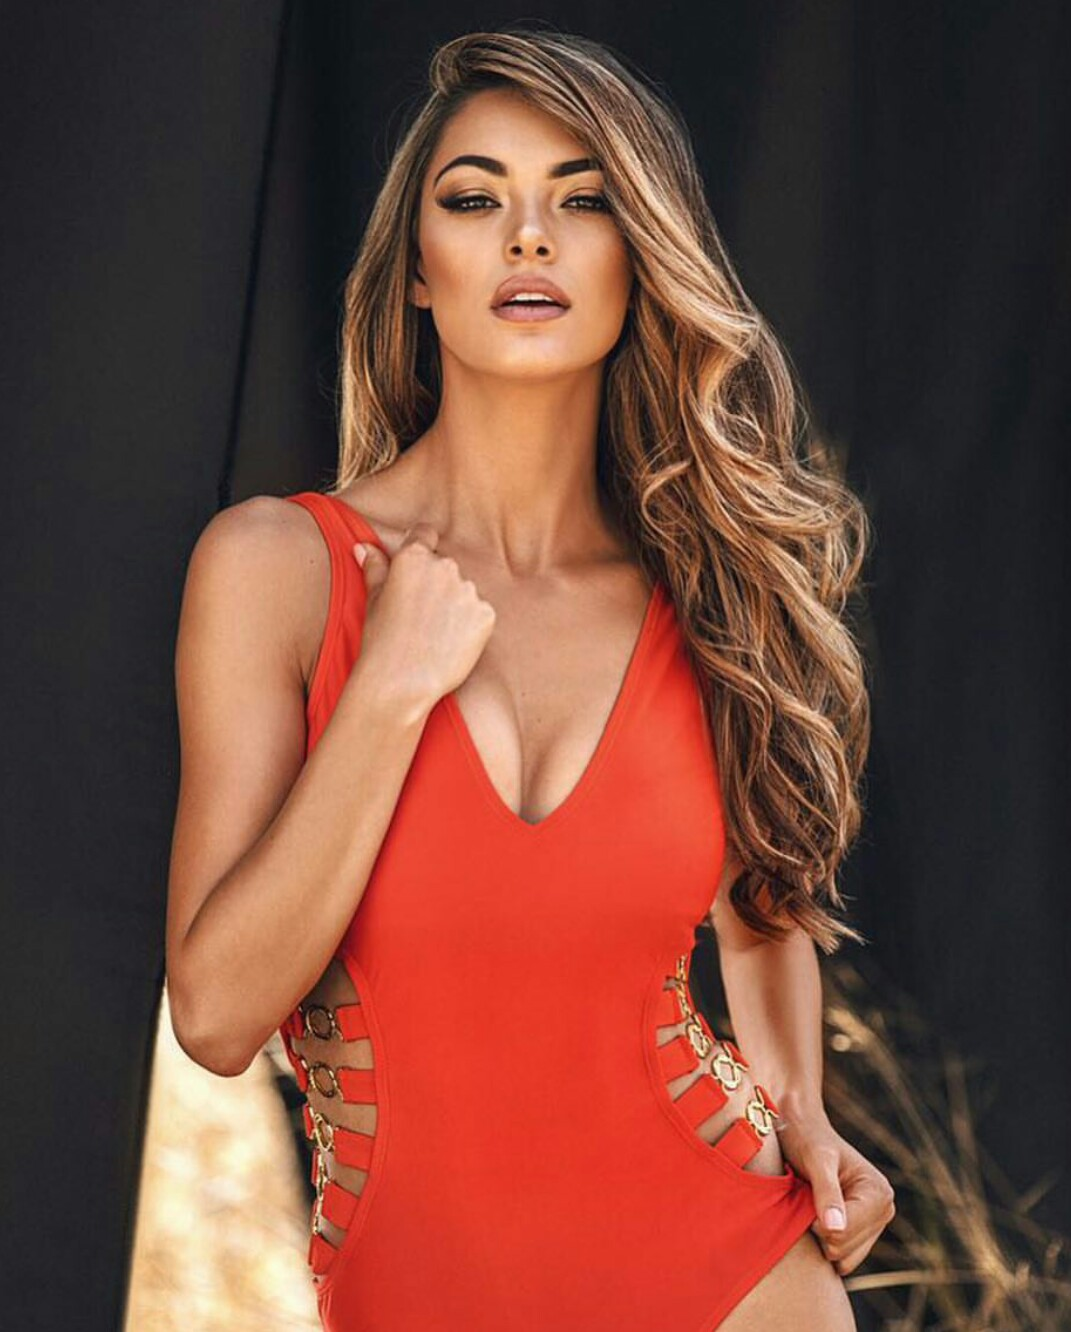 demi leigh nel peters